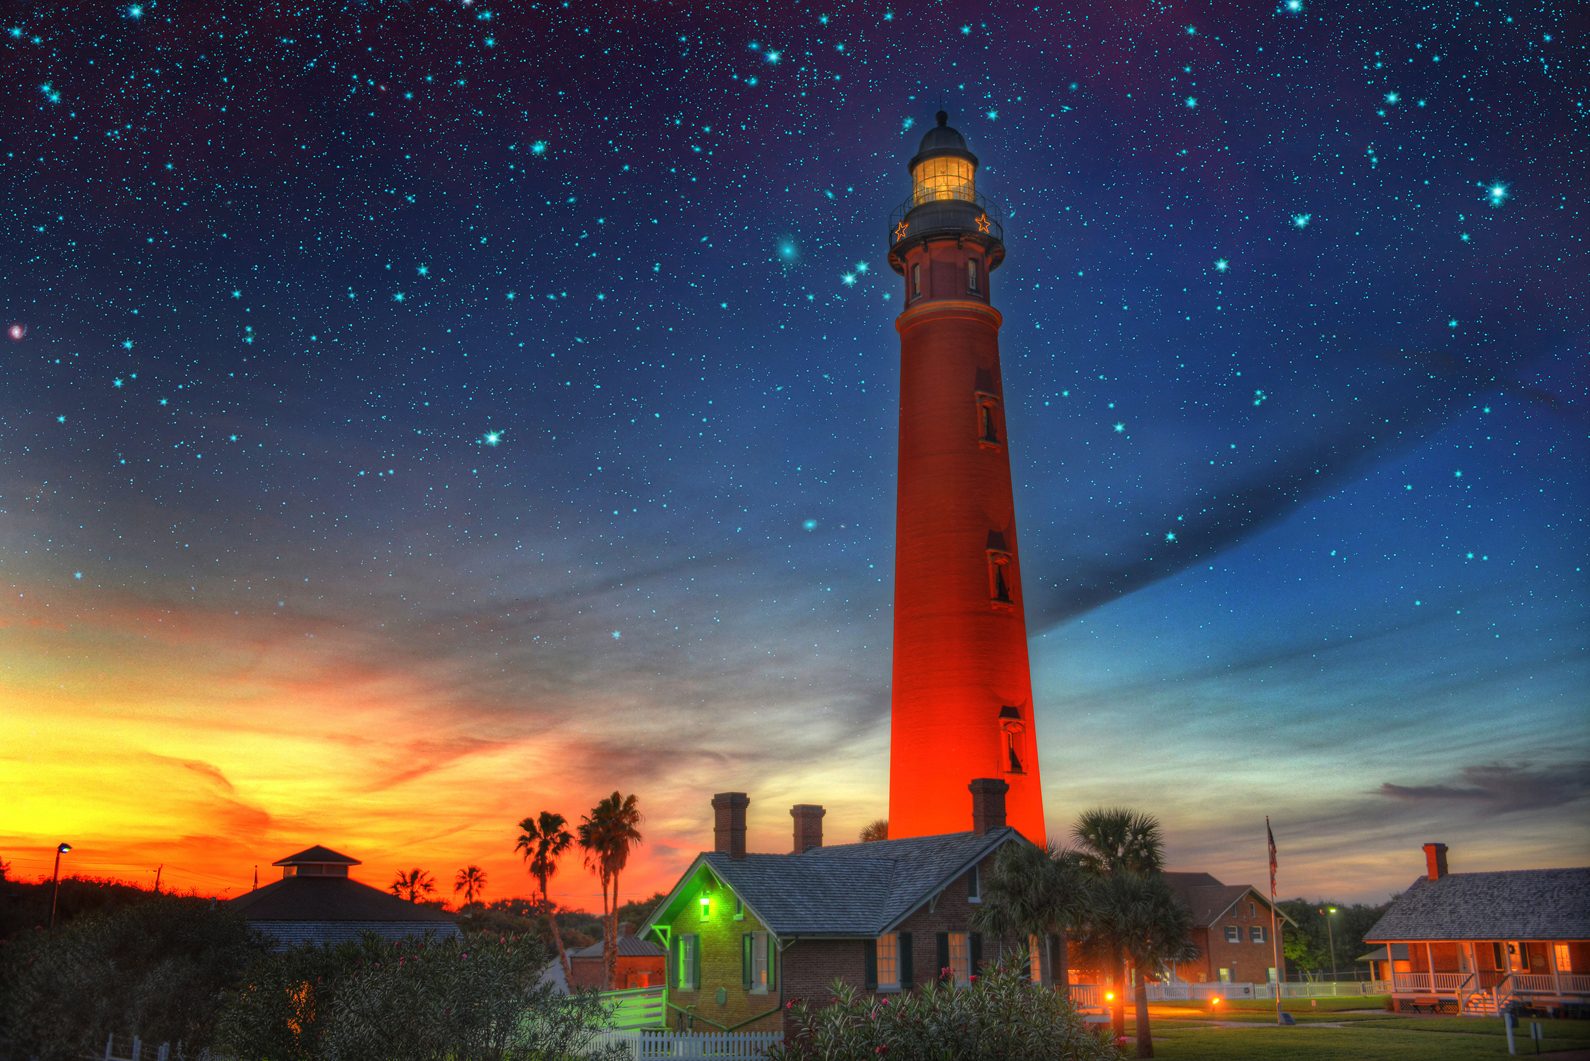 Ponce de Leon Inlet Lighthouse, the tallest lighthouse in Florida.